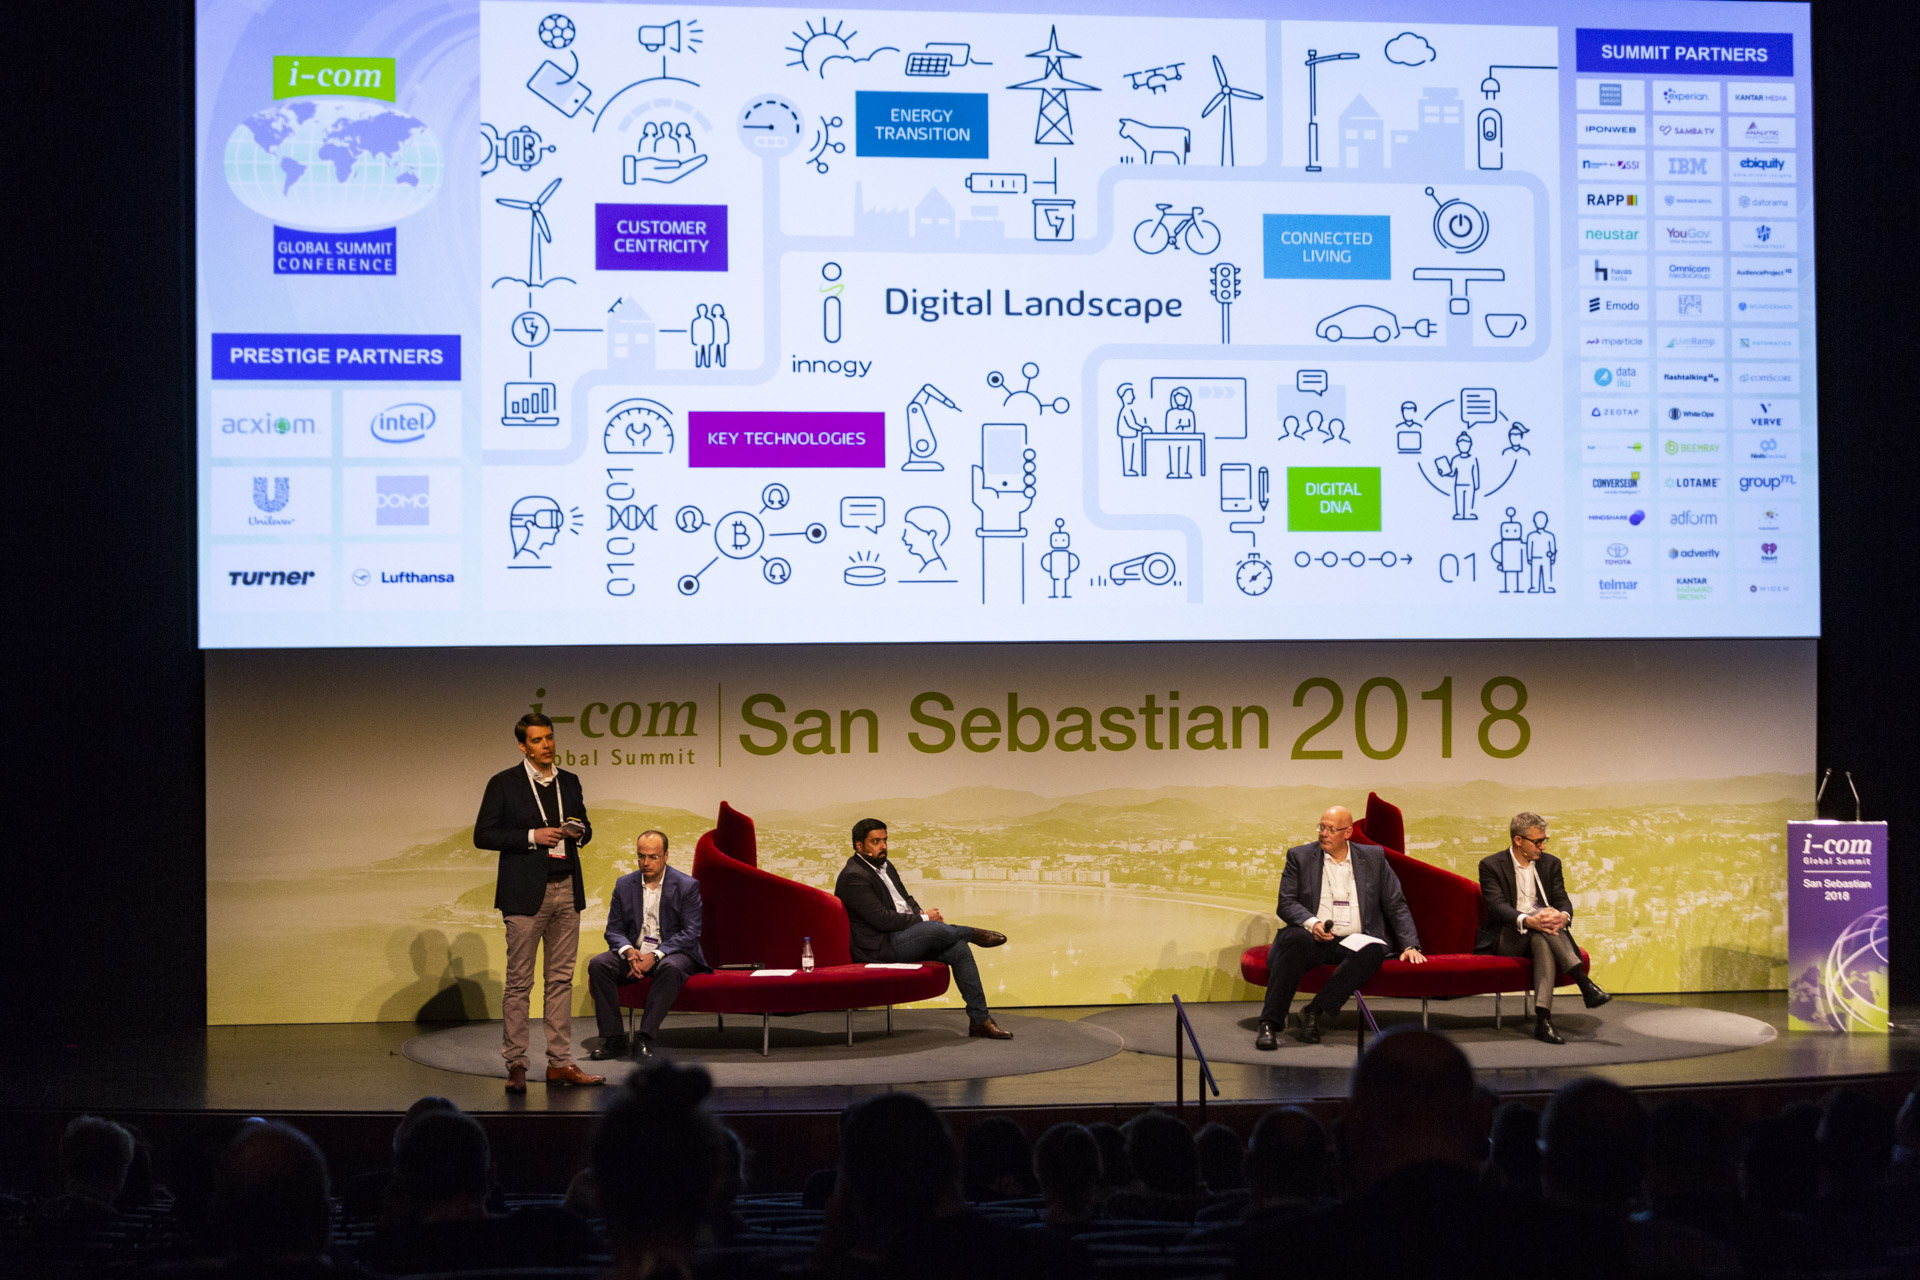 I-COM Global Summit San Sebastian 2018